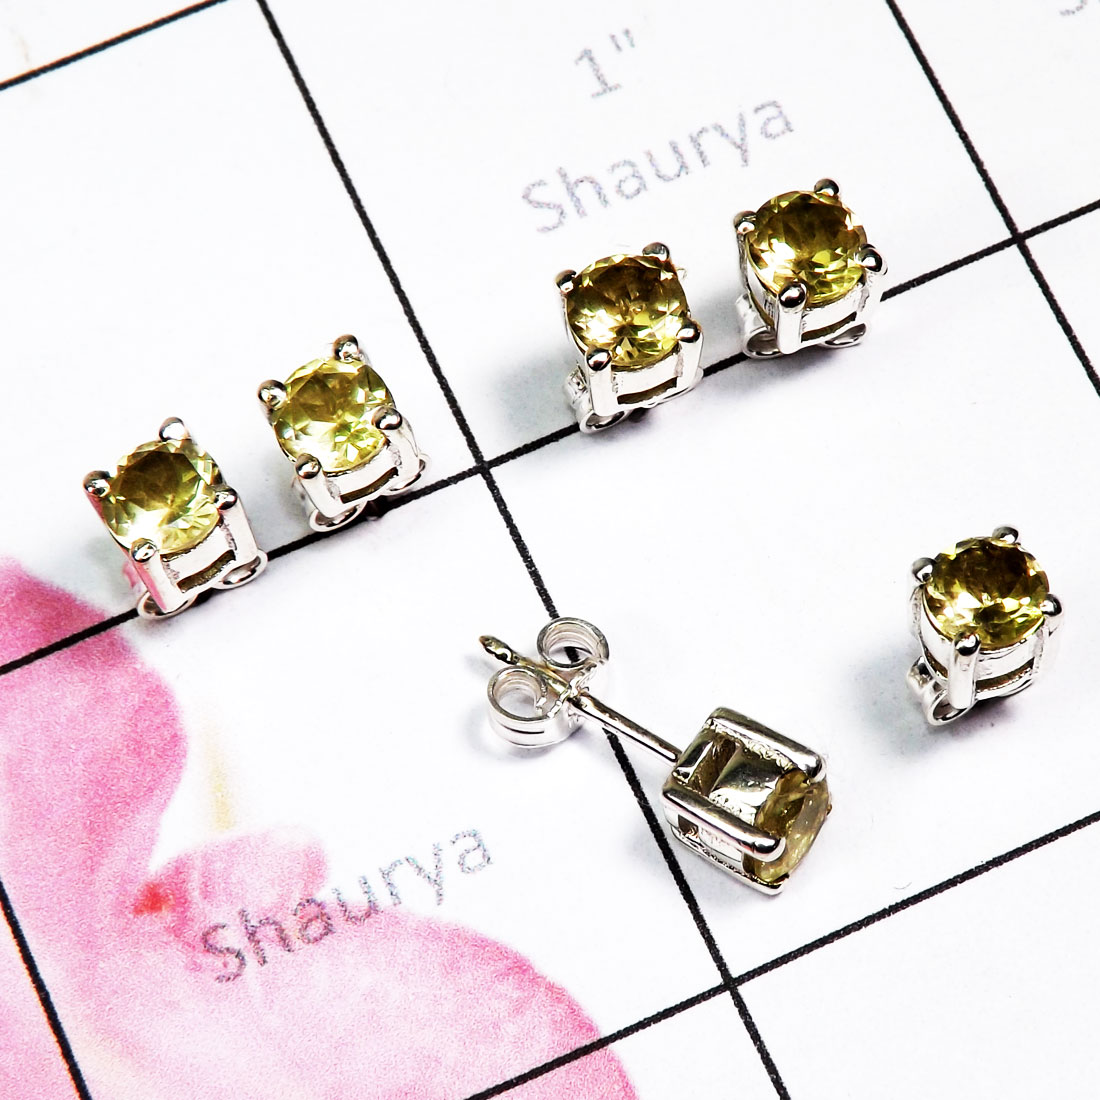 Green Amethyst Cut 3 Pair Stud Earrings B - SSE938 - Exclusive 3 Pair Multi Cut Gem Stone 925 Sterling Silve